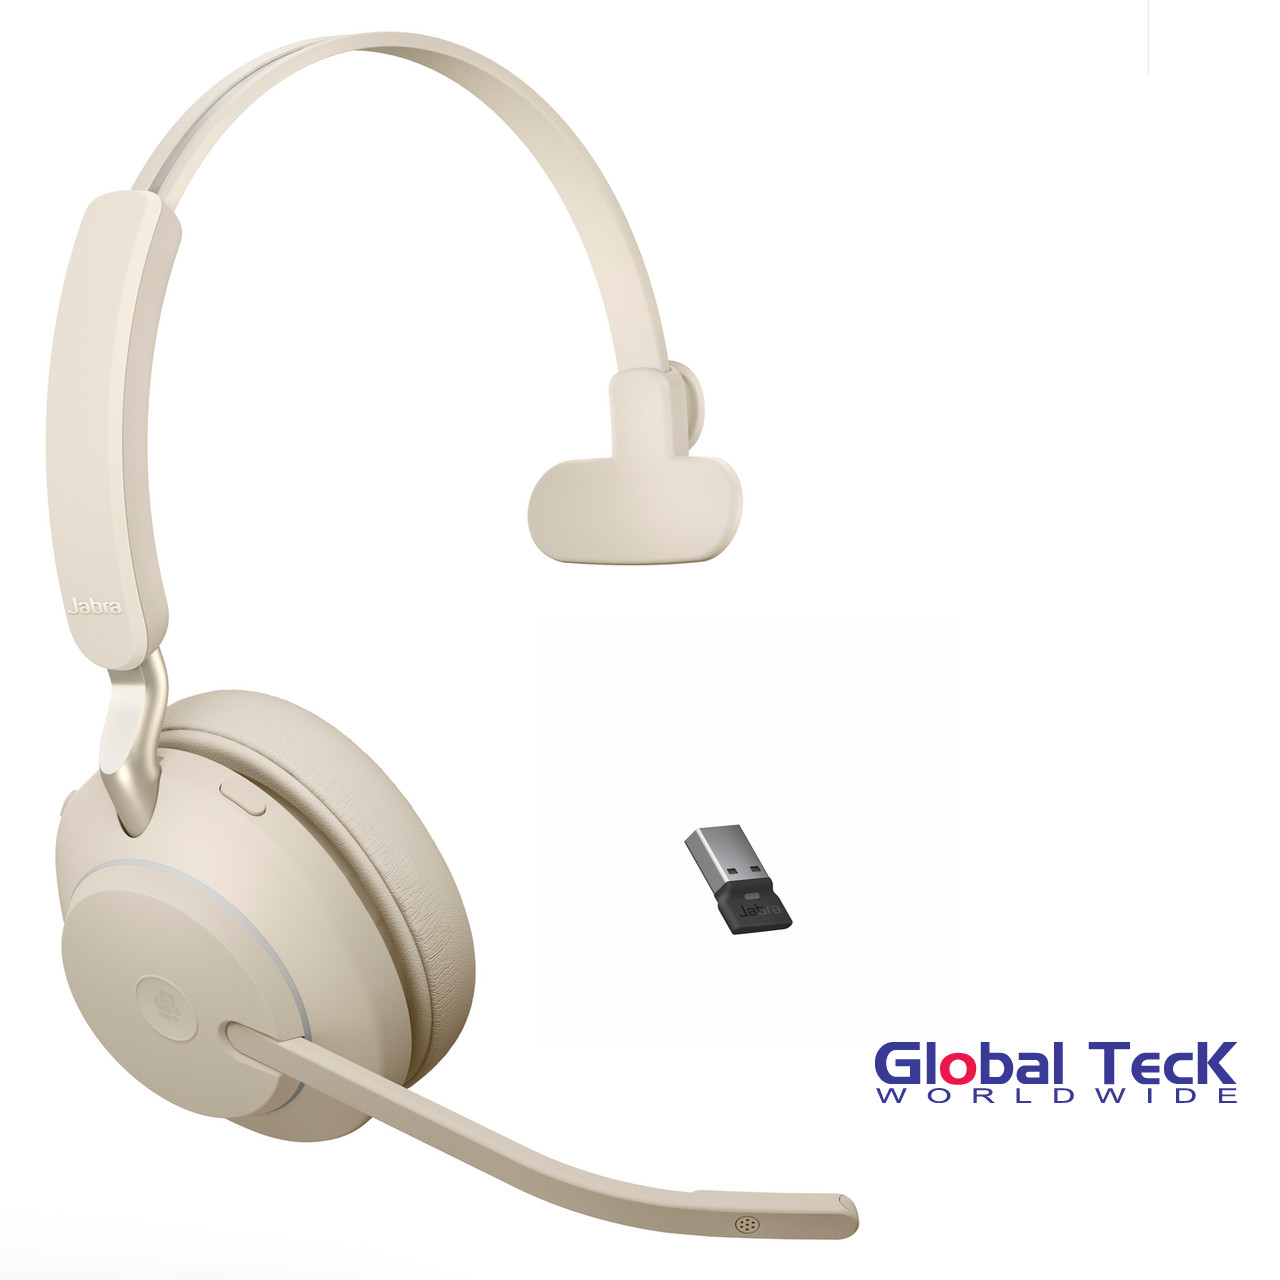 Jabra Evolve2 65 Mono Wireless Headset Beige Uc Version Includes Usb Bluetooth Dongle Compatible With Softphones Smartphones Tablets Pc Mac 26599 889 998